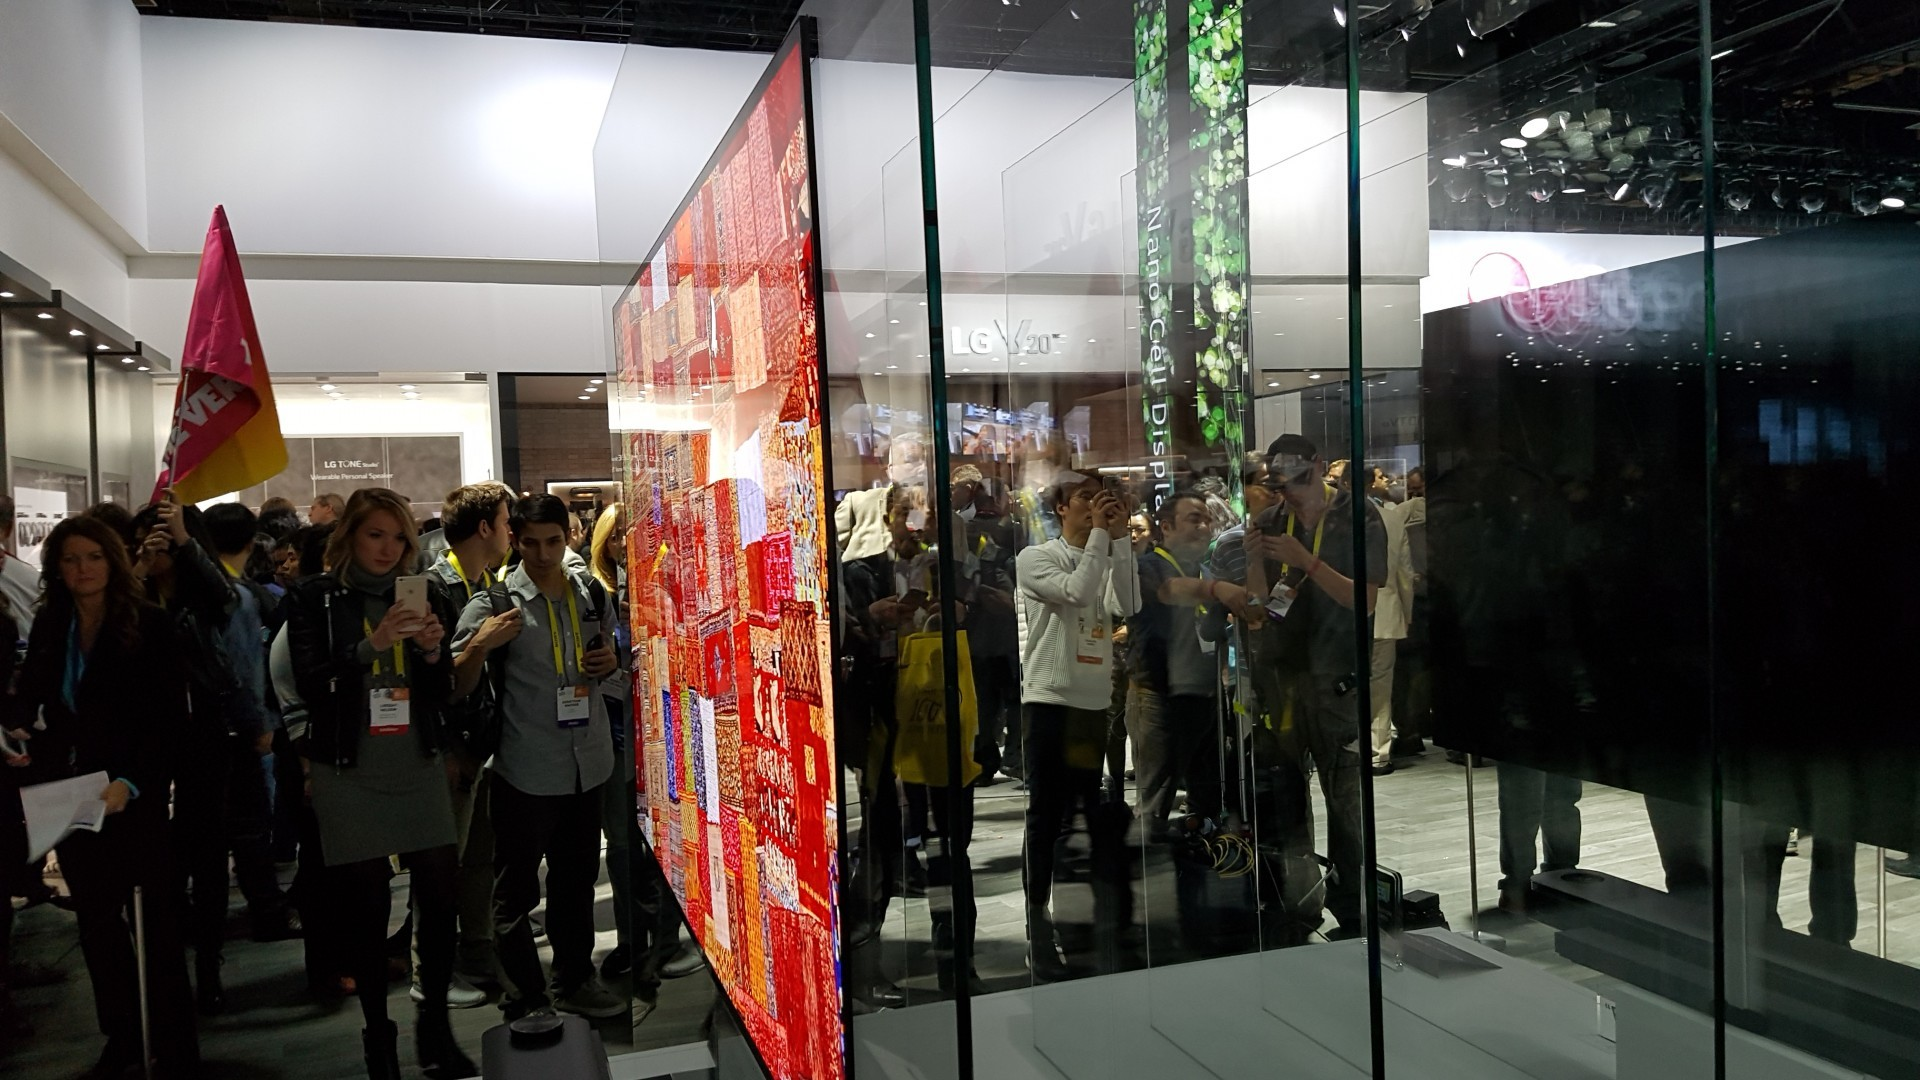 1920x1080 LG Steals the show at CES with a wallpaper thin OLED TV